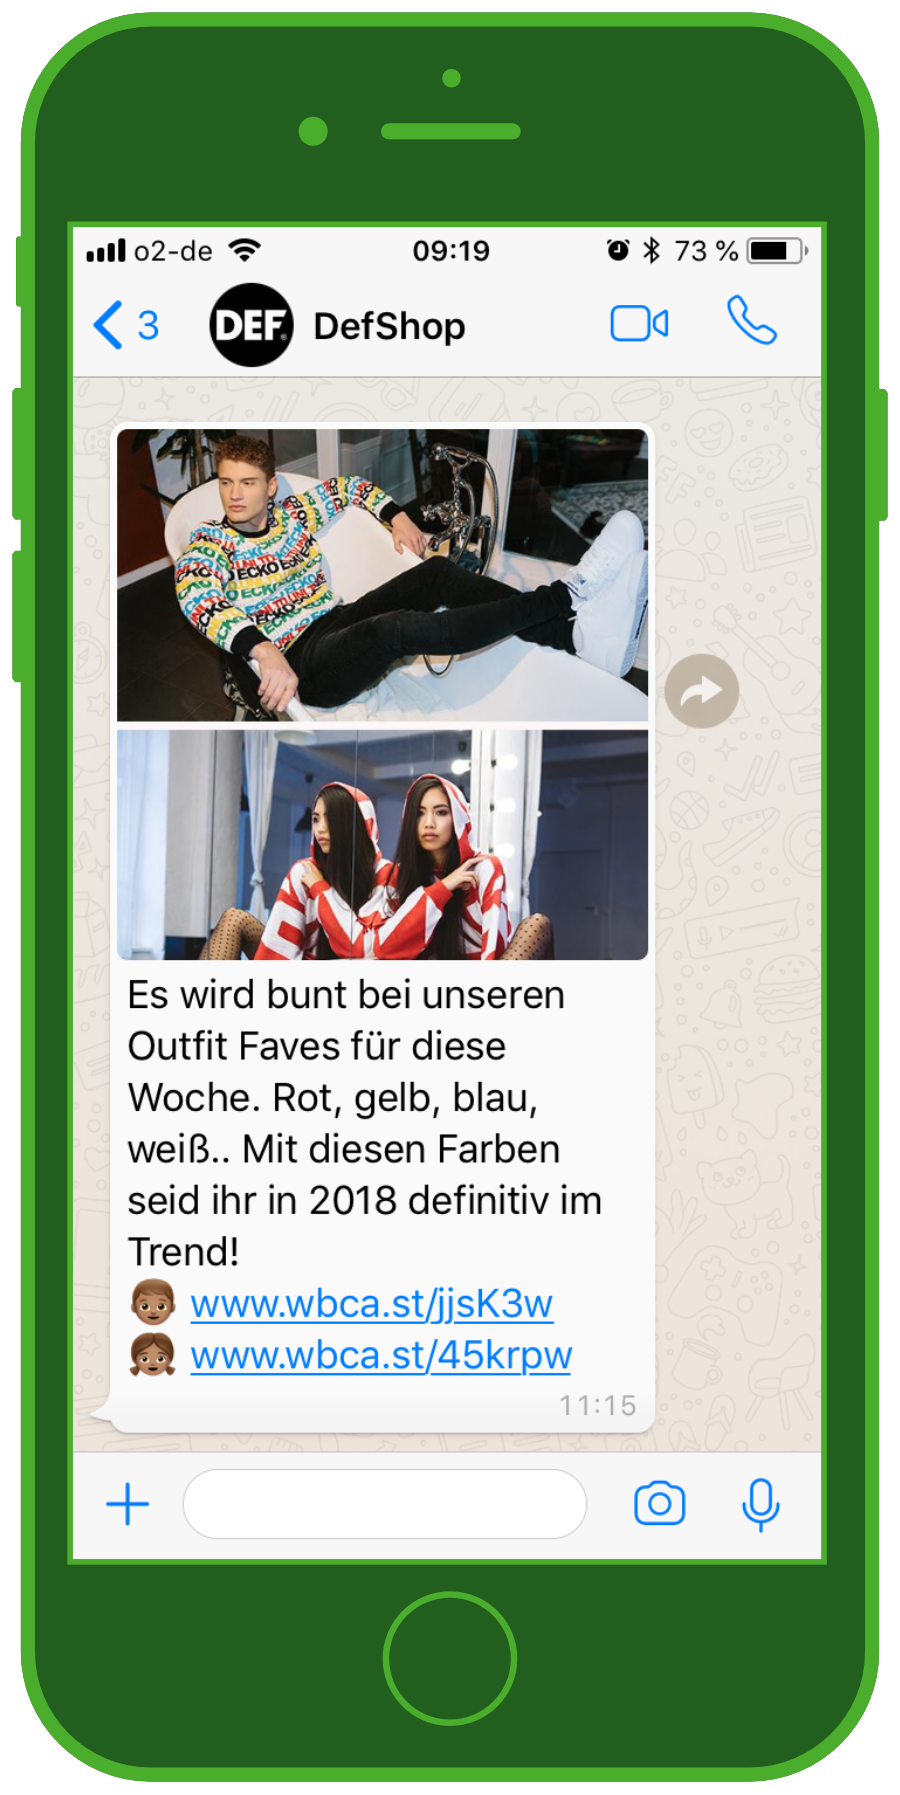 device-WhatsApp-Fashion-defshop